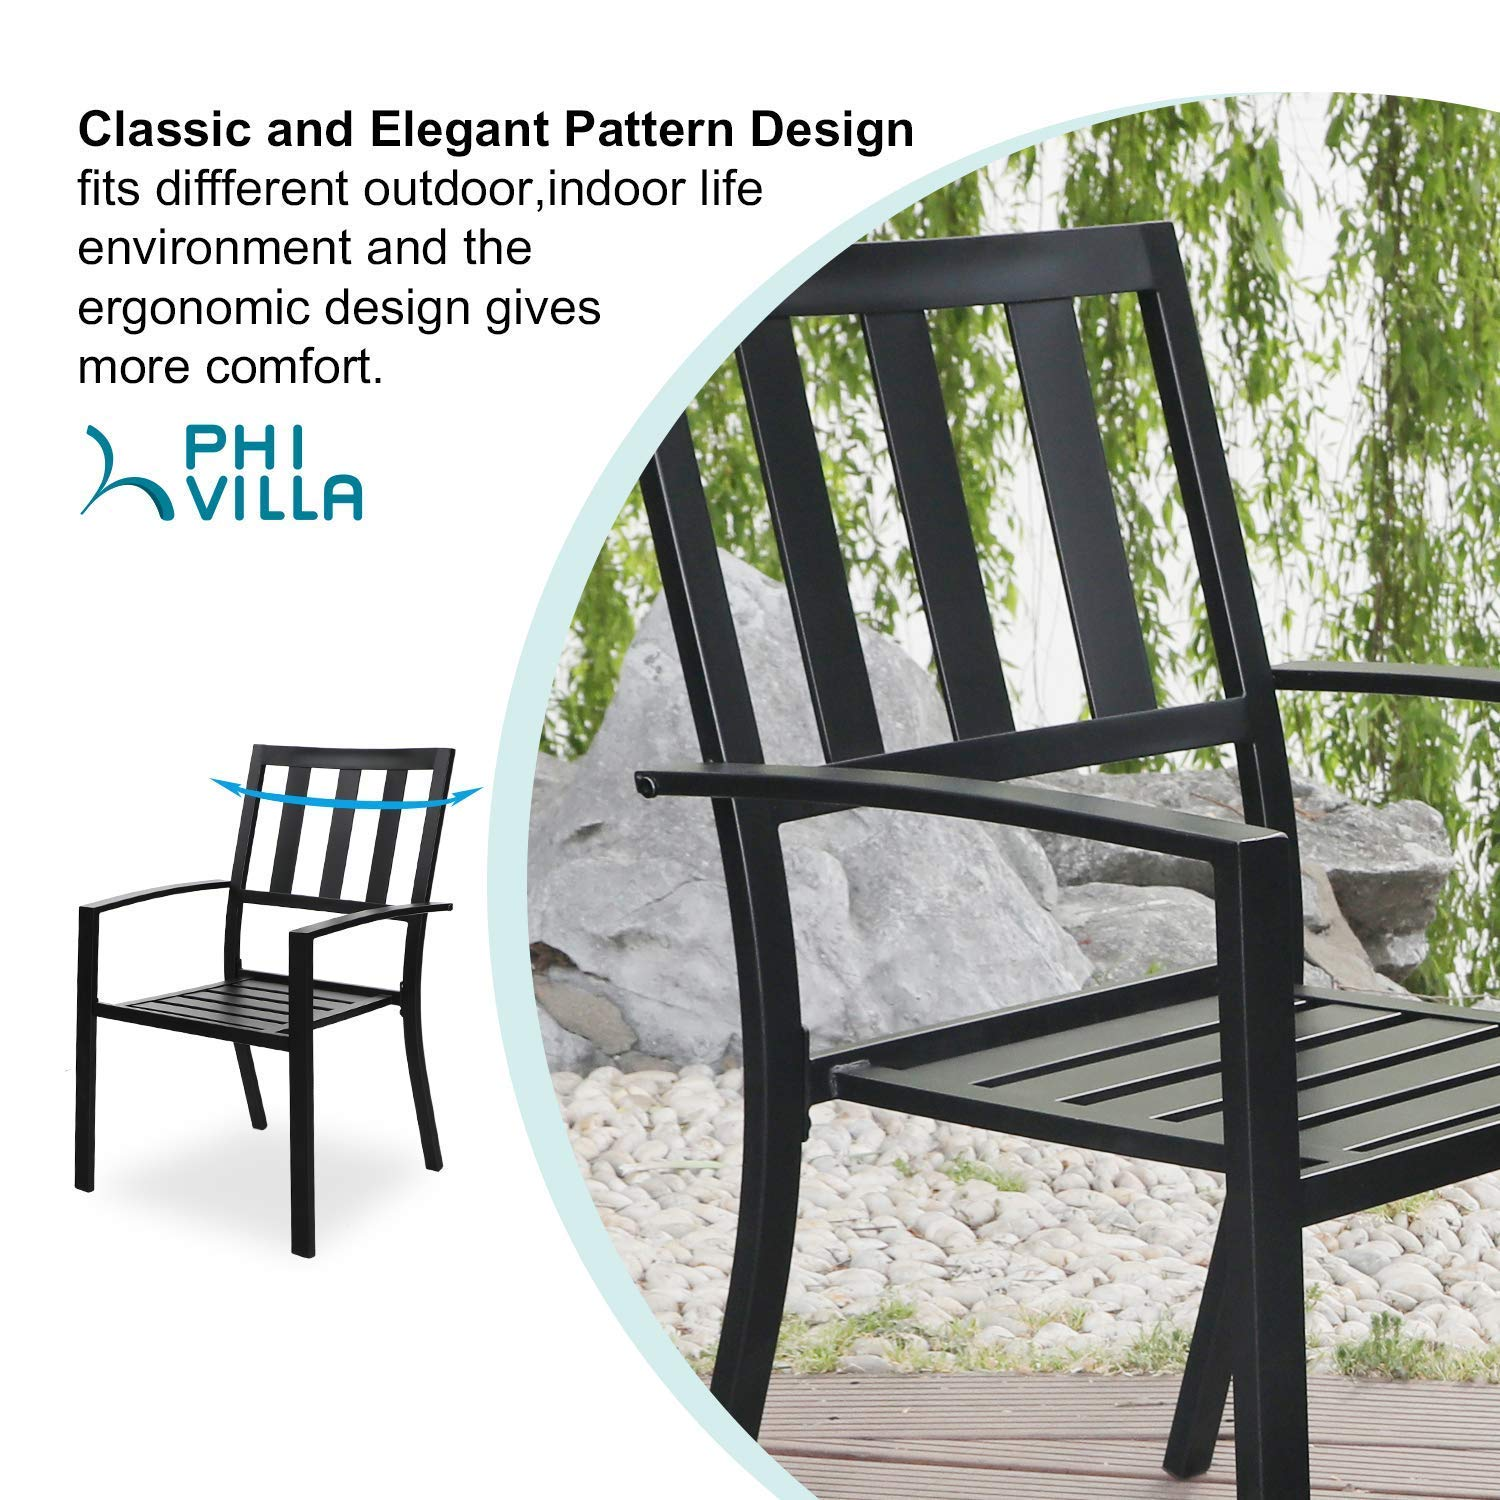 MF STUDIO 2 Piece Patio Wrought Iron Dining Seating Chair – Supports 300 LBS